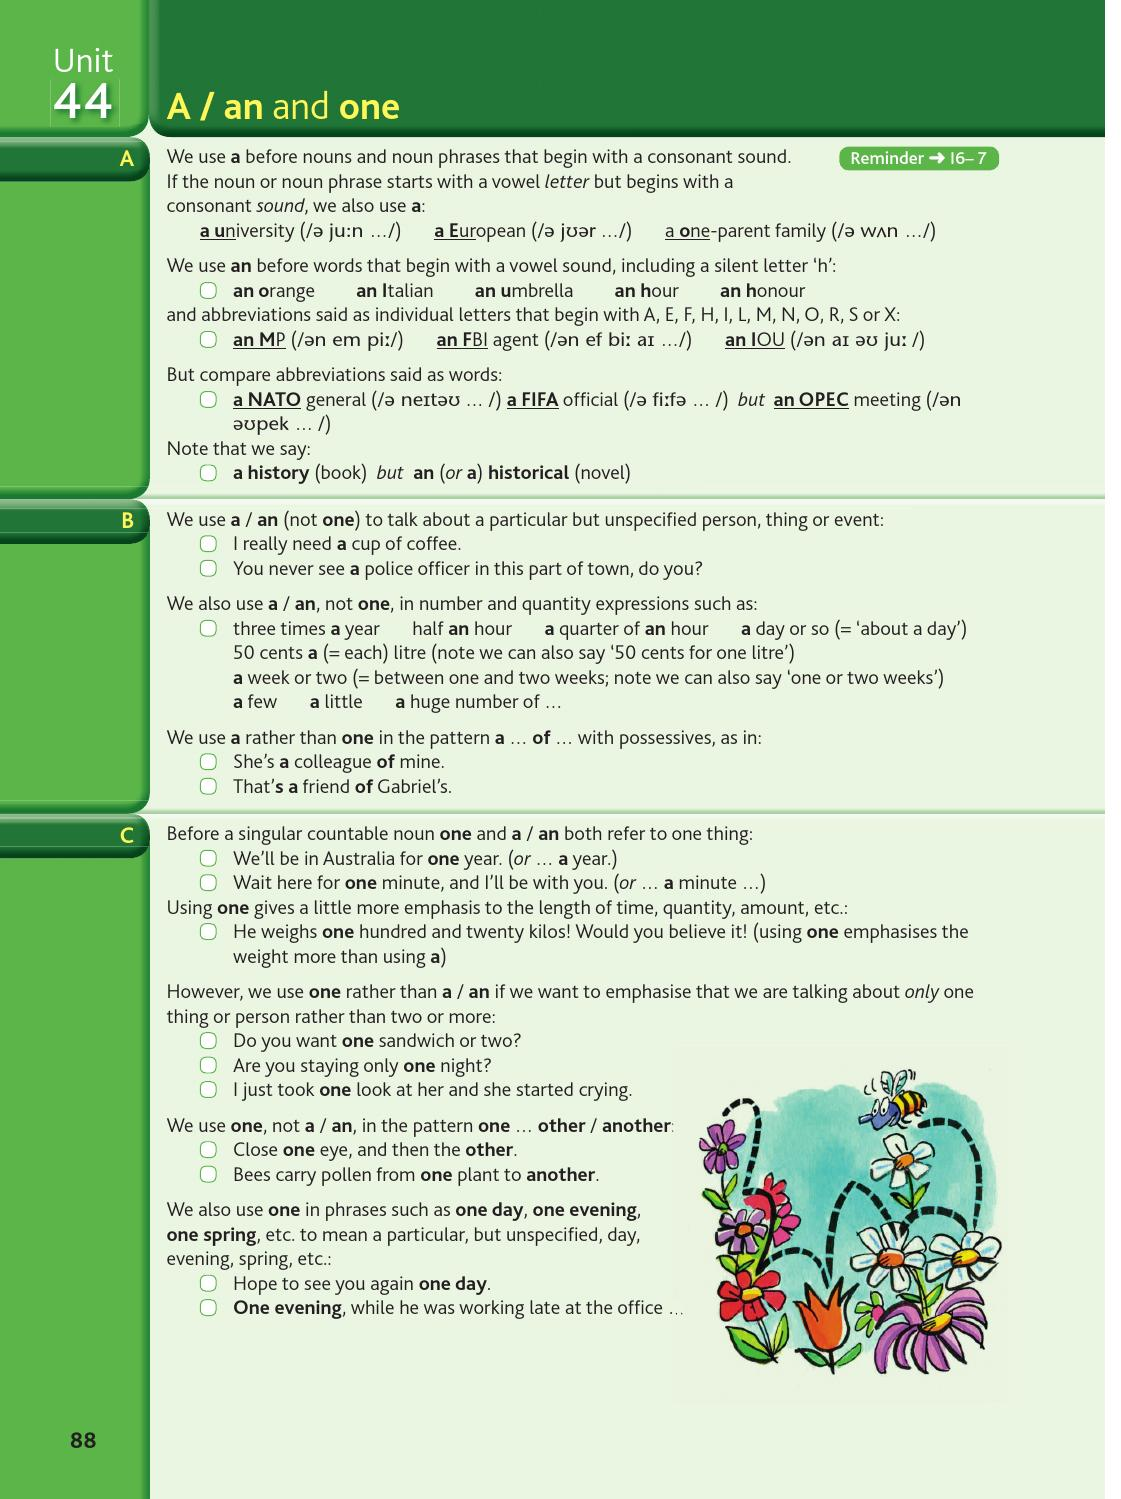 Advanced grammar in use sample unit with answers unit 44 by Cambridge  University Press - issuu